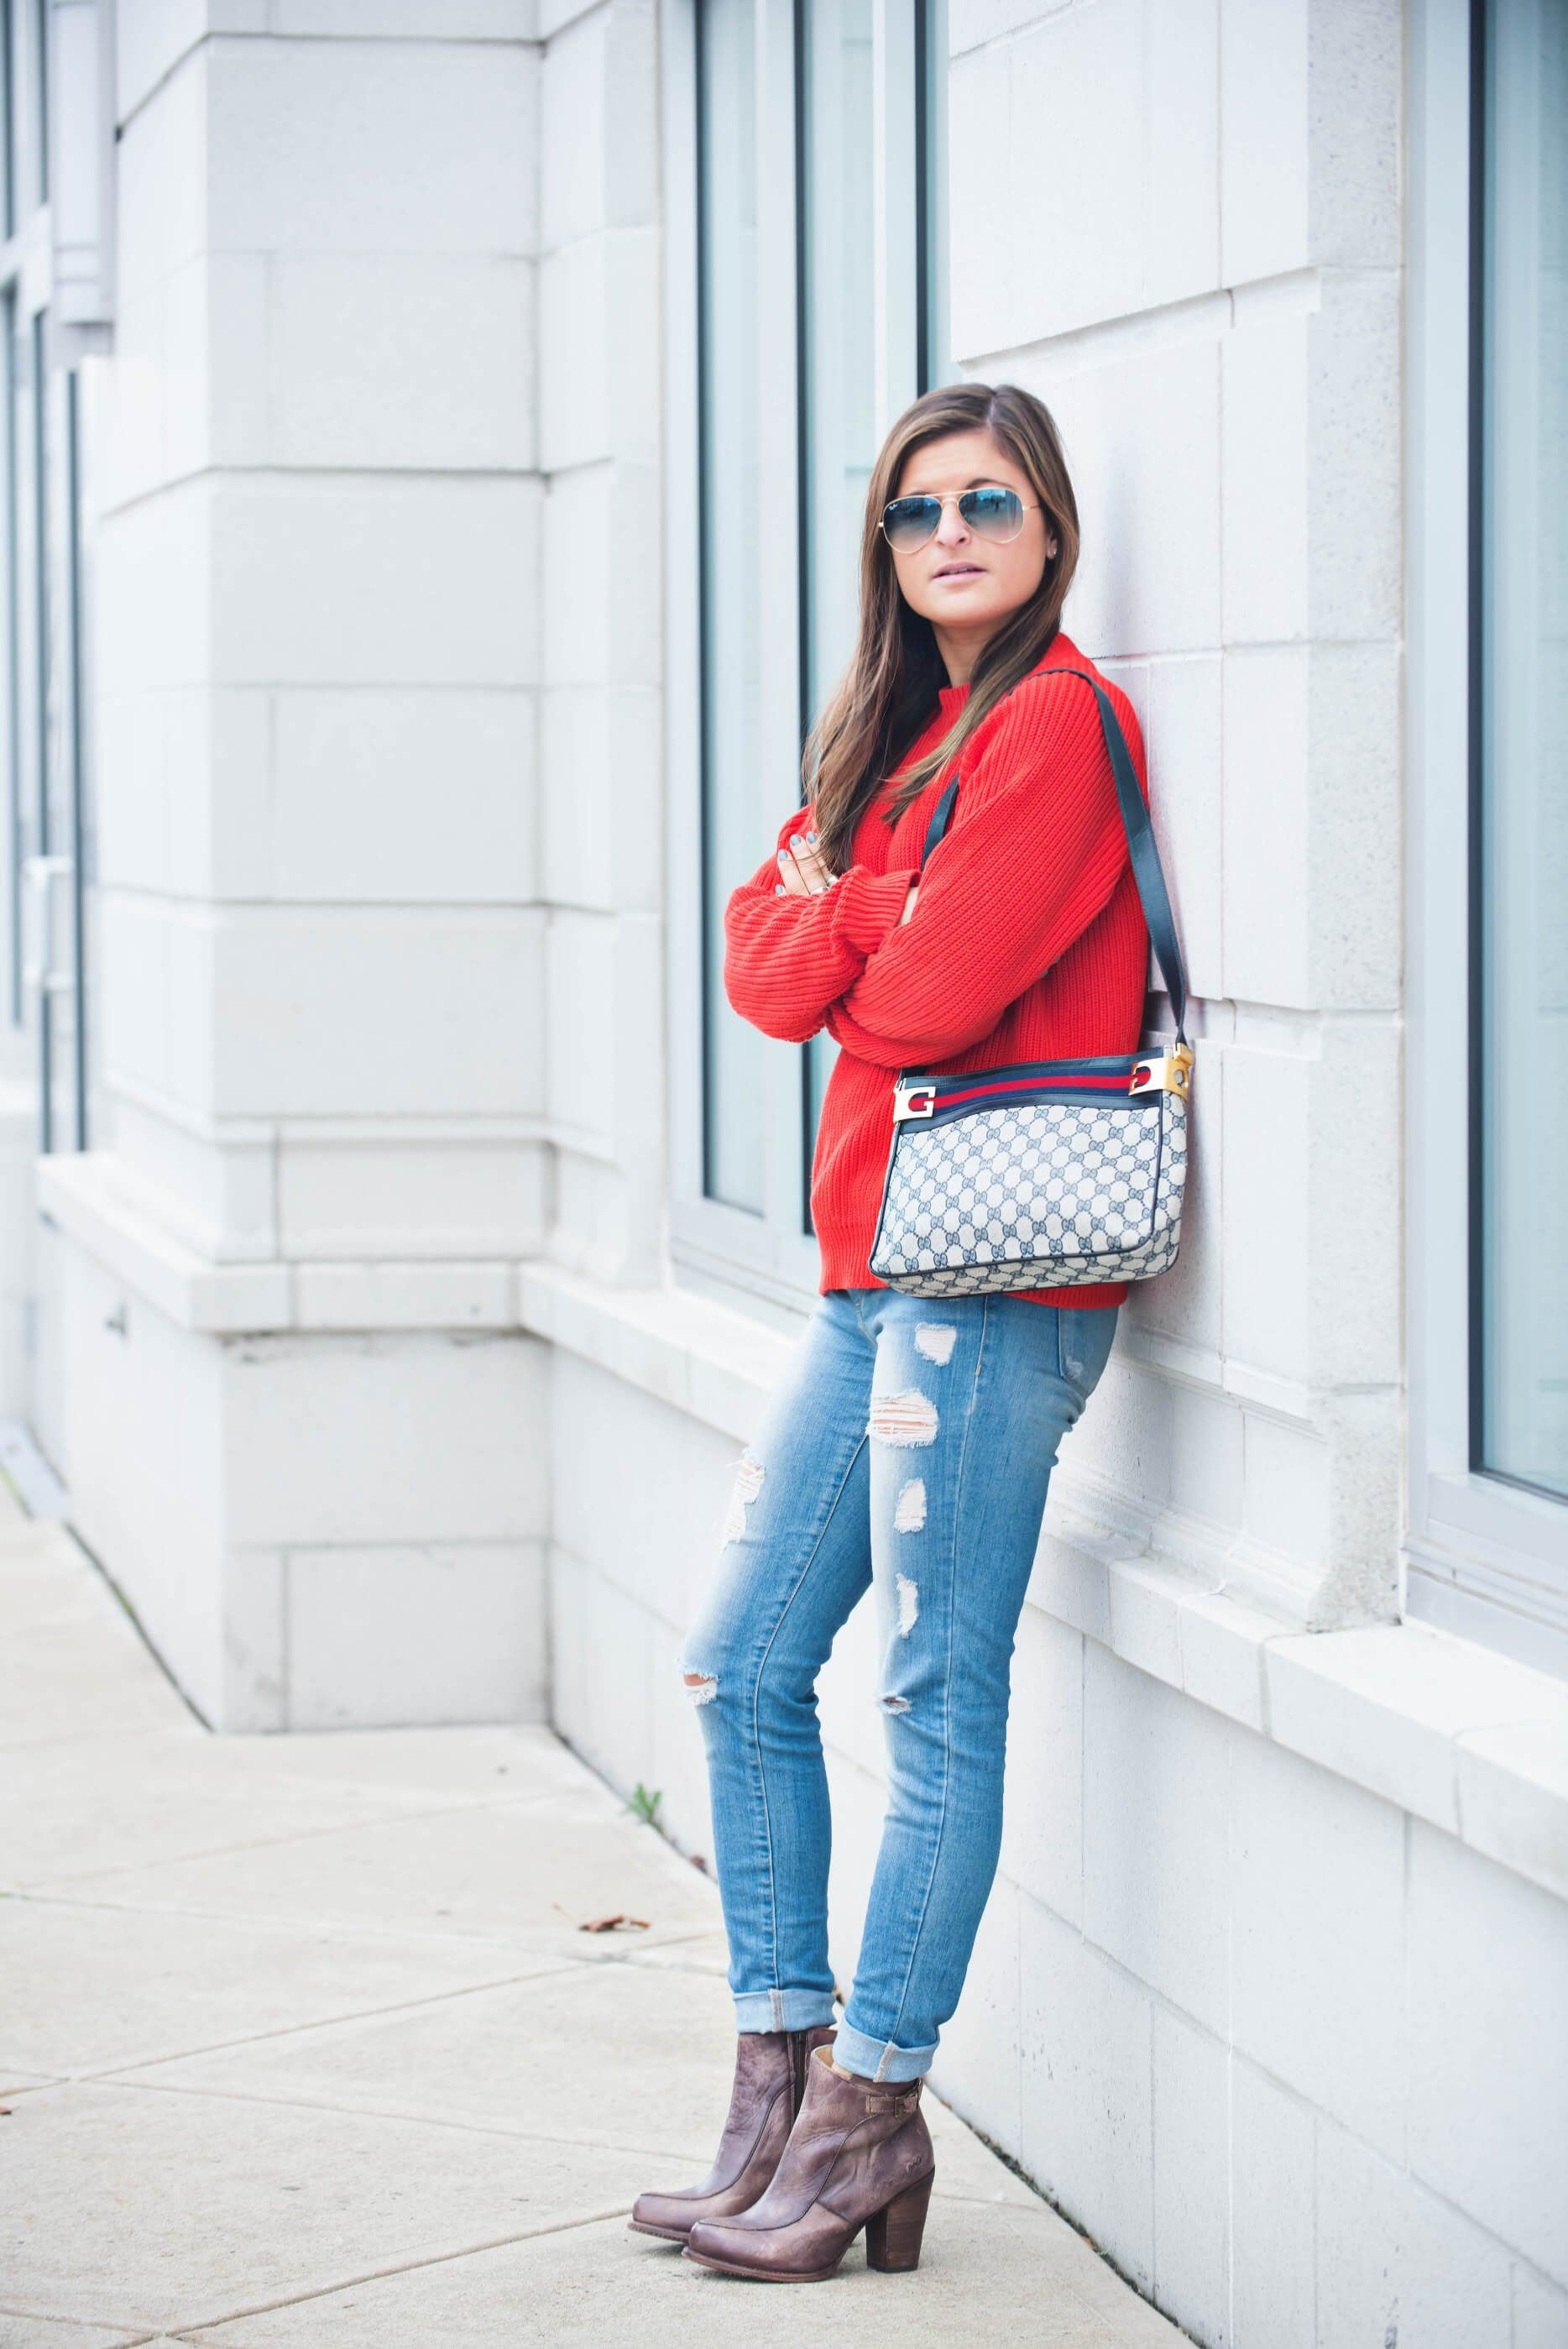 ca346be60 Right On Red | red knit sweater, ripped jeans, ankle boots, Gucci bag, fall  fashion, fall outfit ideas, fall casual outfit, street style, fashion  blogger To ...